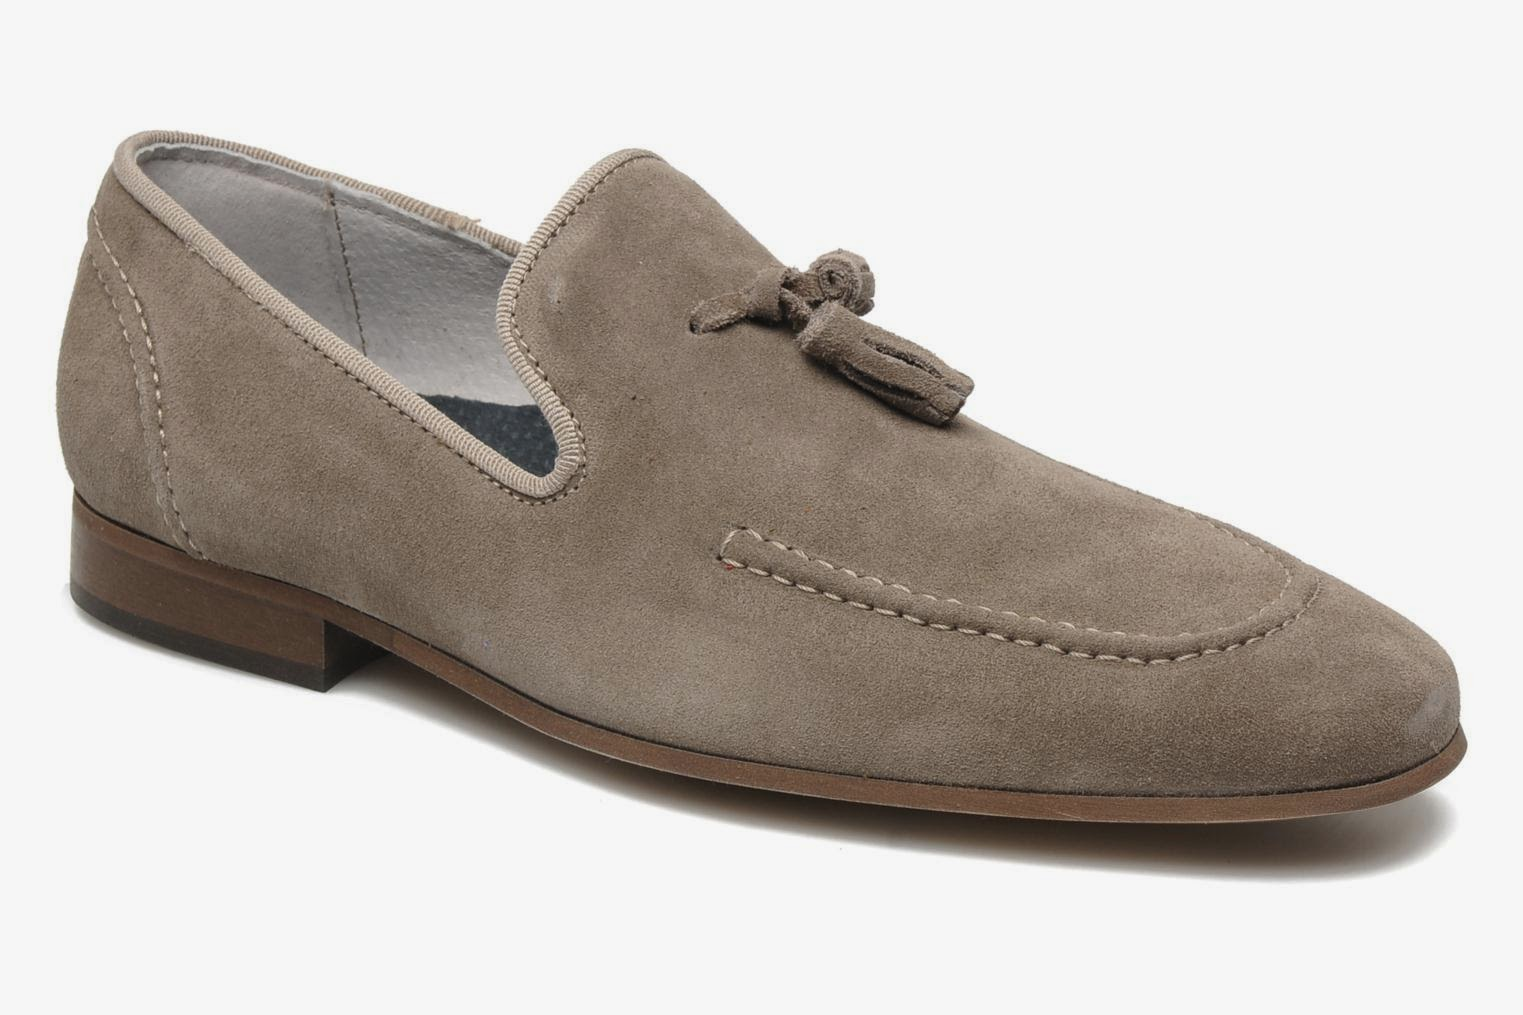 tassel slip on loafer for men